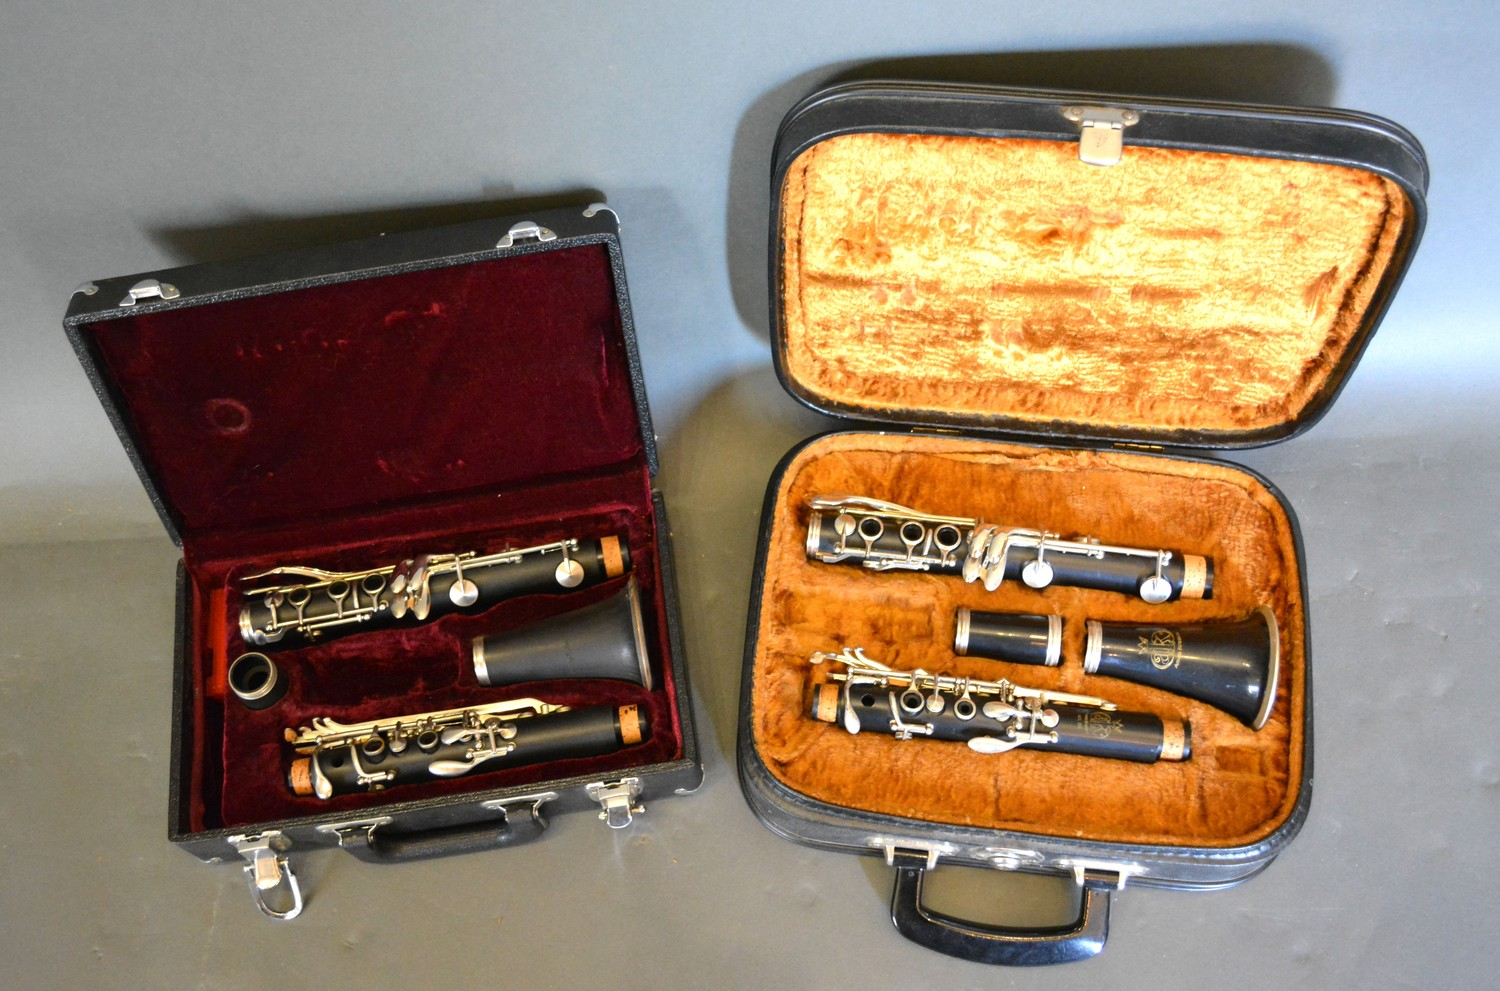 A clarinet by Fairfield in case together with another similar